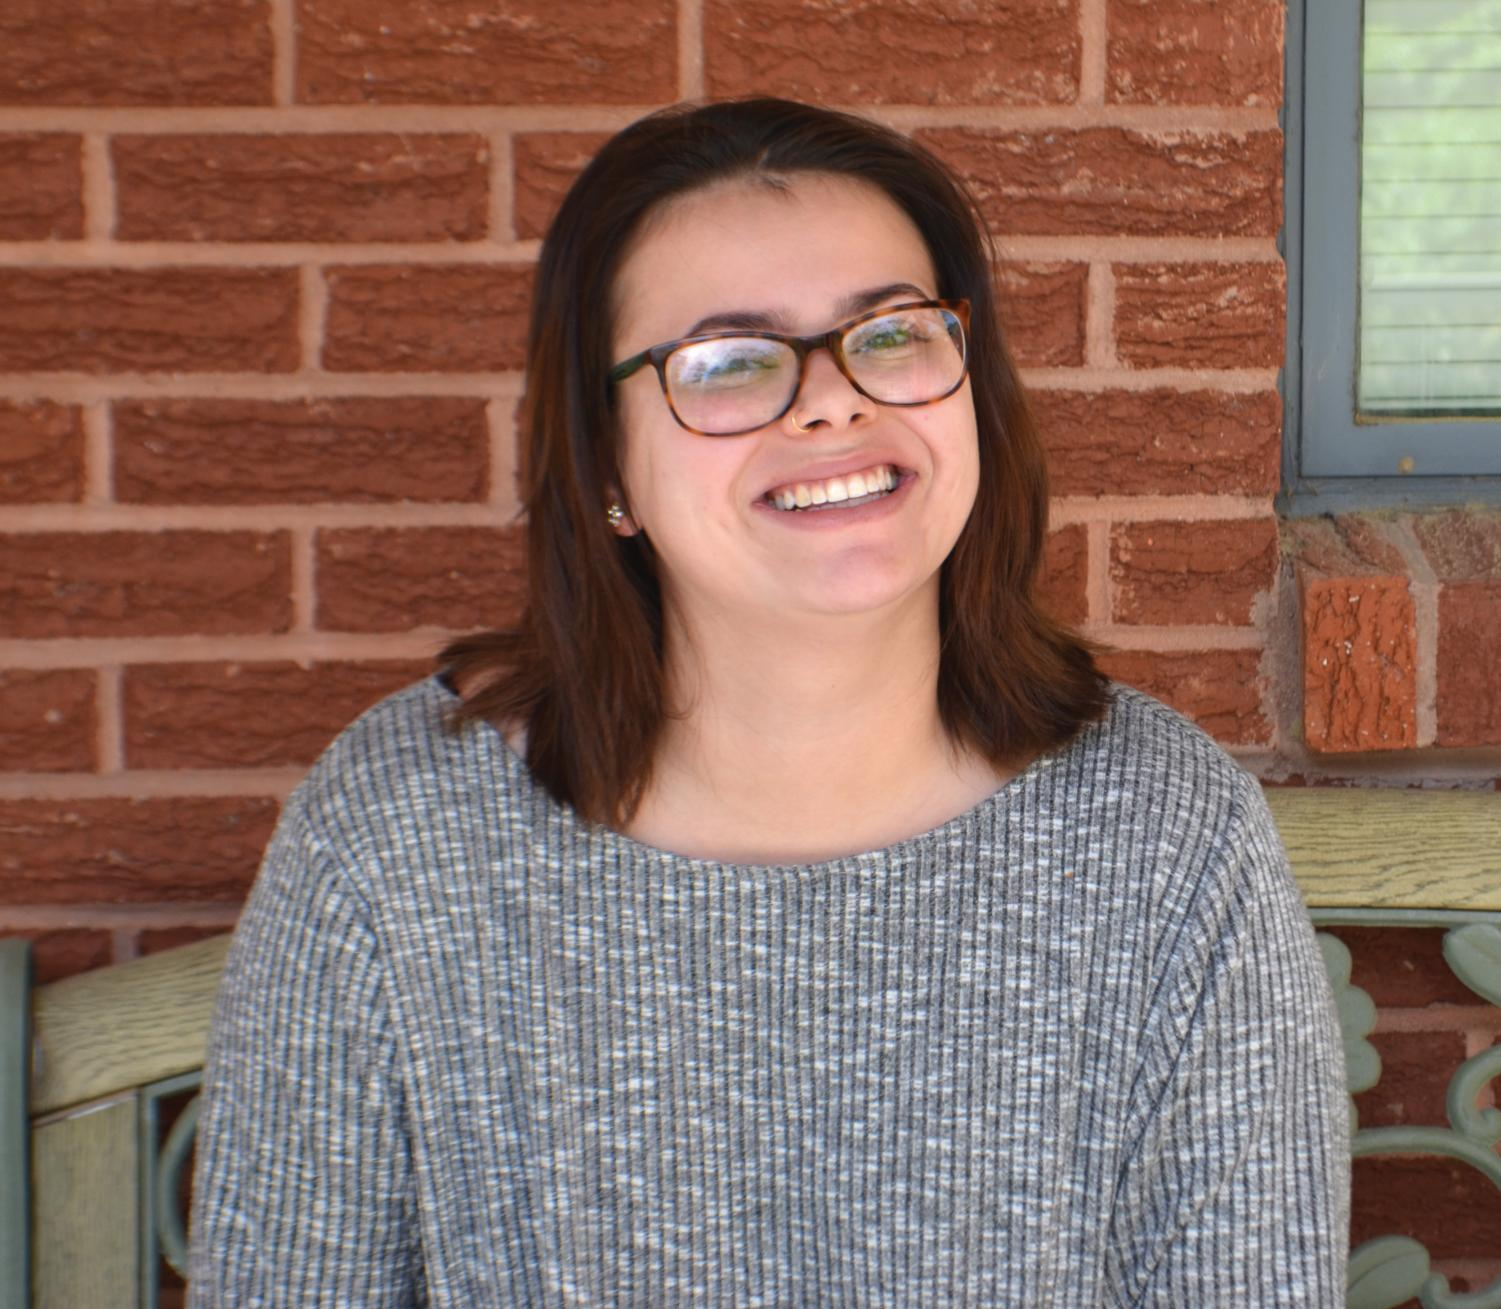 Senior English major Glennie Tanner is involved in many student clubs to improve her photography skills and grow her business.